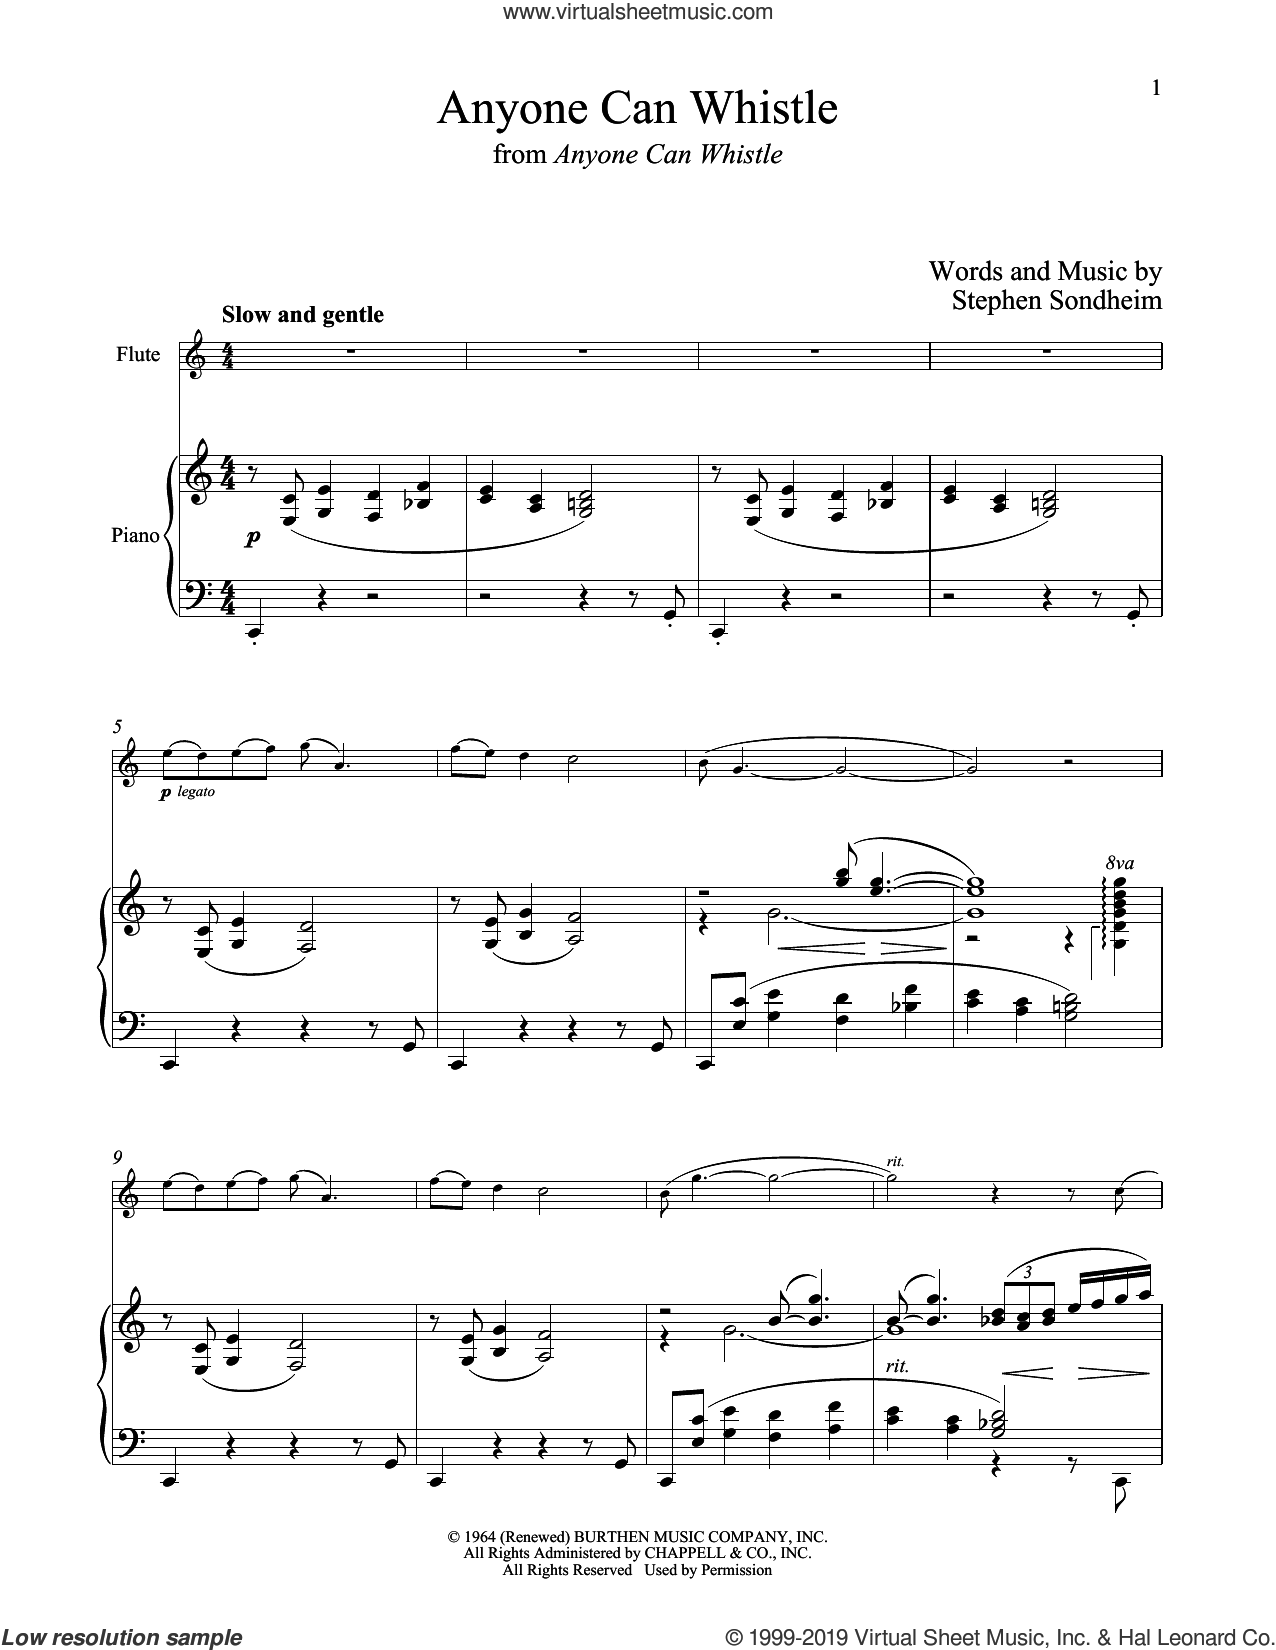 Anyone Can Whistle (from Anyone Can Whistle) sheet music for flute and piano by Stephen Sondheim, intermediate skill level